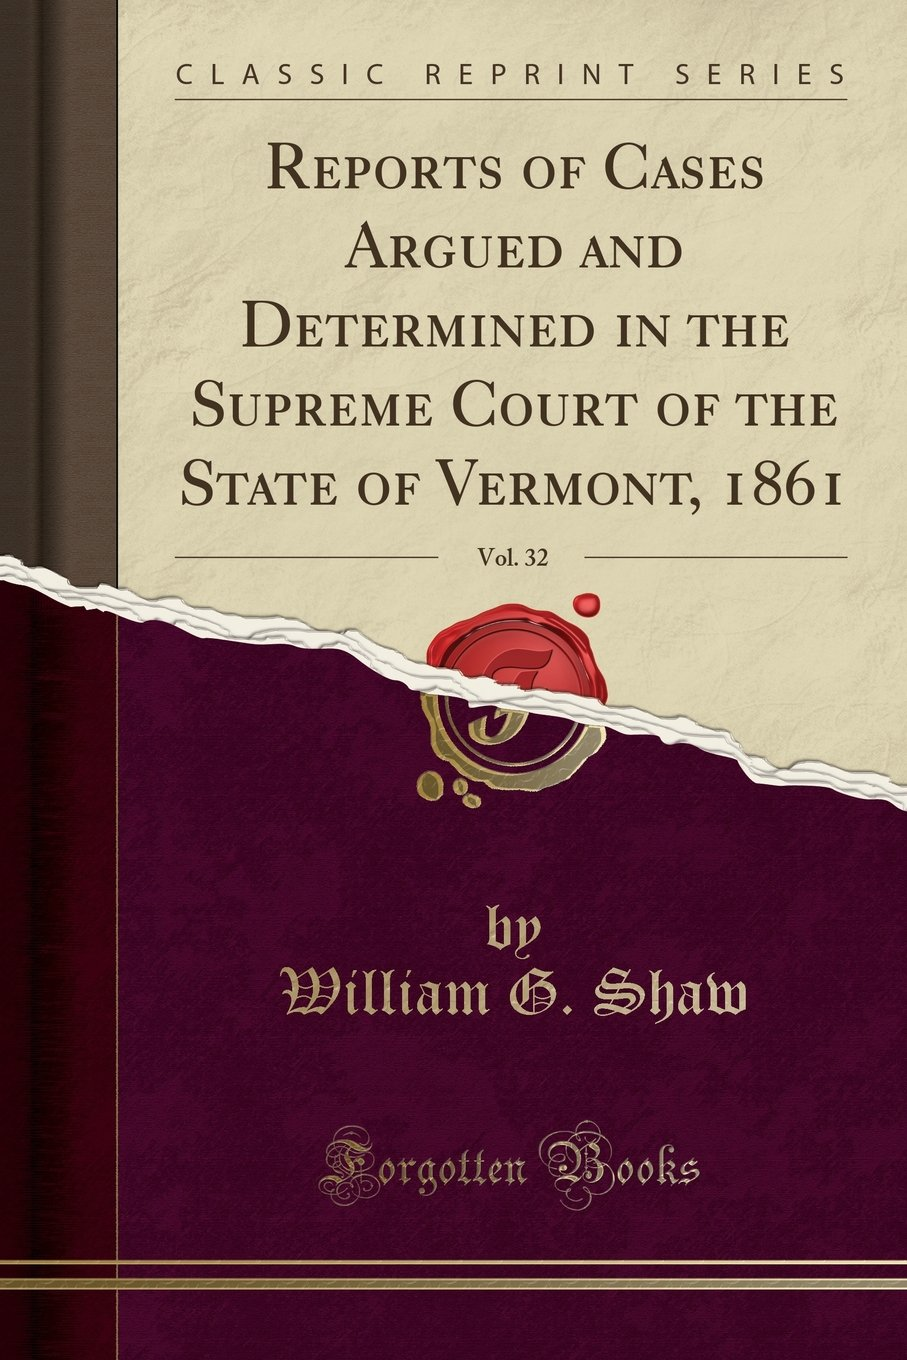 Reports of Cases Argued and Determined in the Supreme Court of the State of Vermont, 1861, Vol. 32 (Classic Reprint) ebook